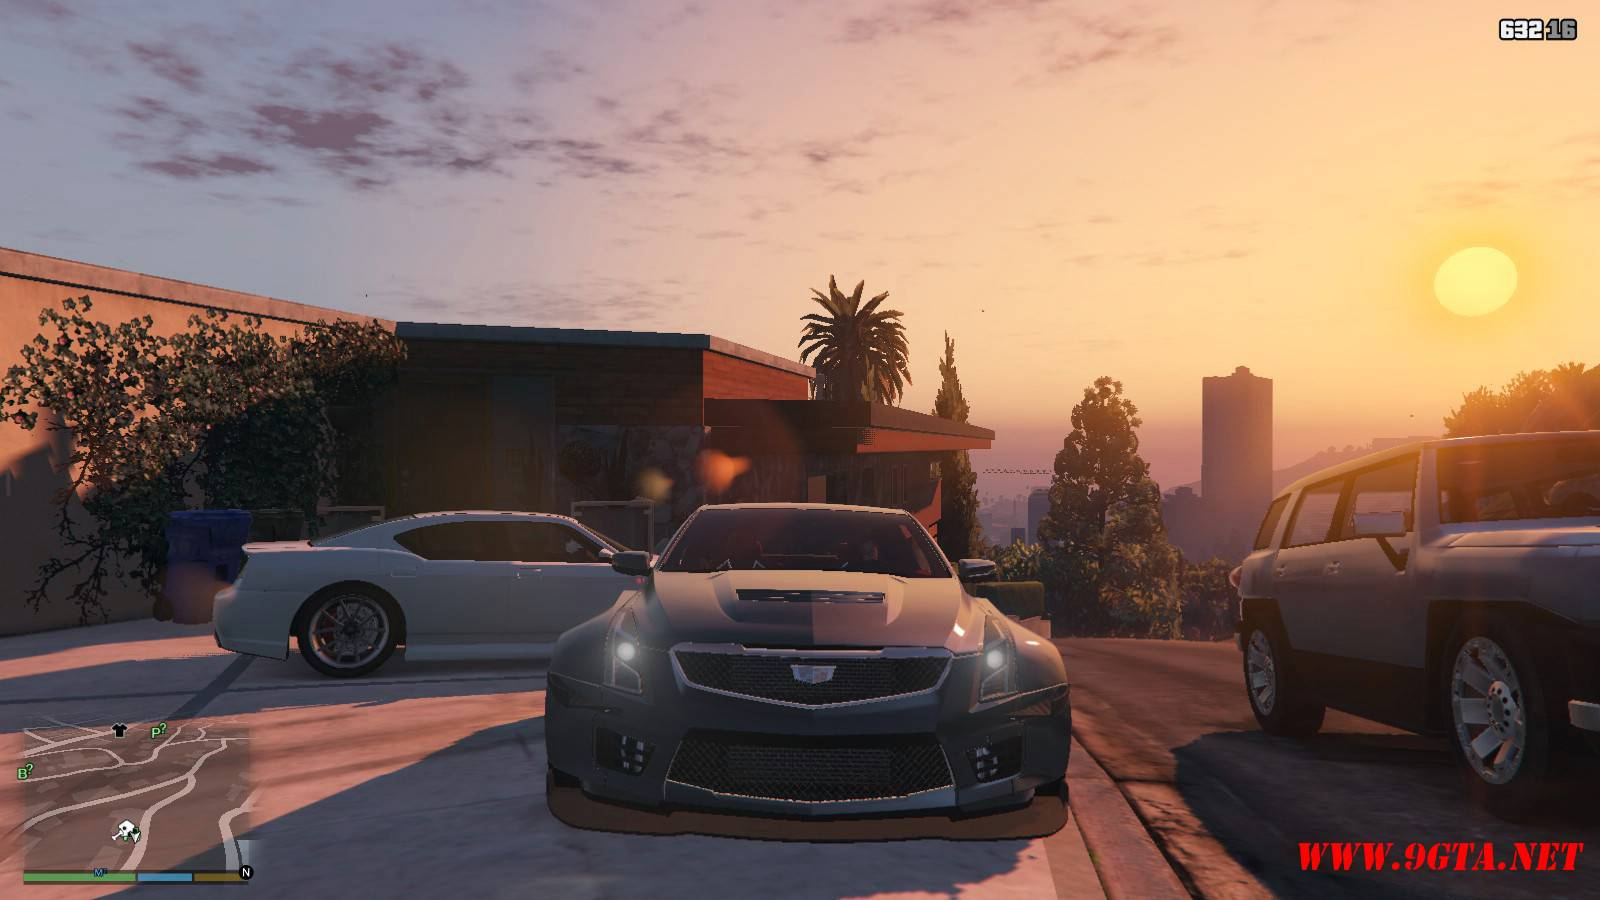 2016 Cadillac ATS-V Forza Edition Mod For GTA5 (9)